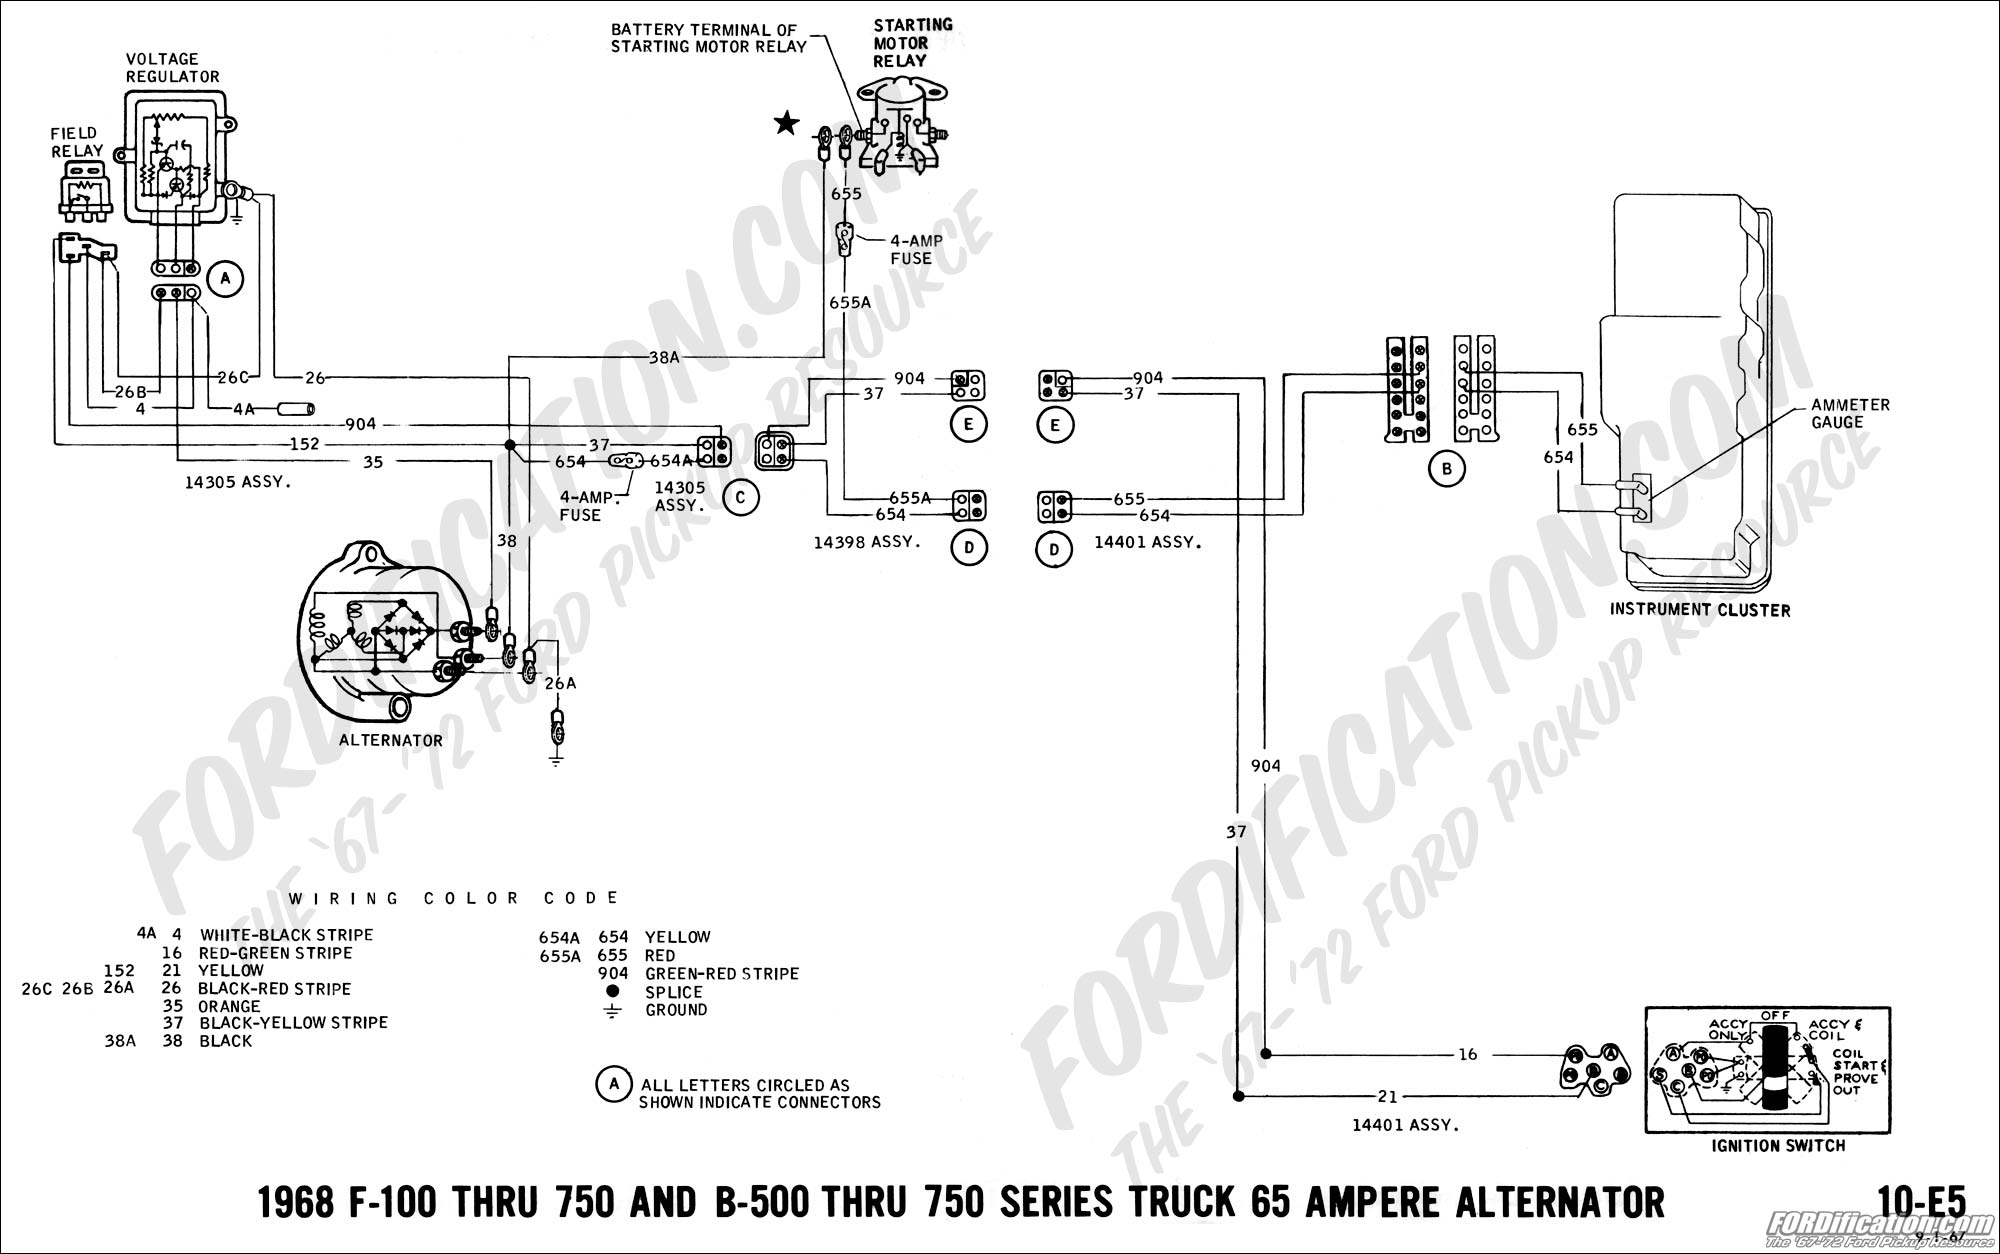 1968 ford f100 wiring schematics easy wiring diagrams u2022 rh art isere com